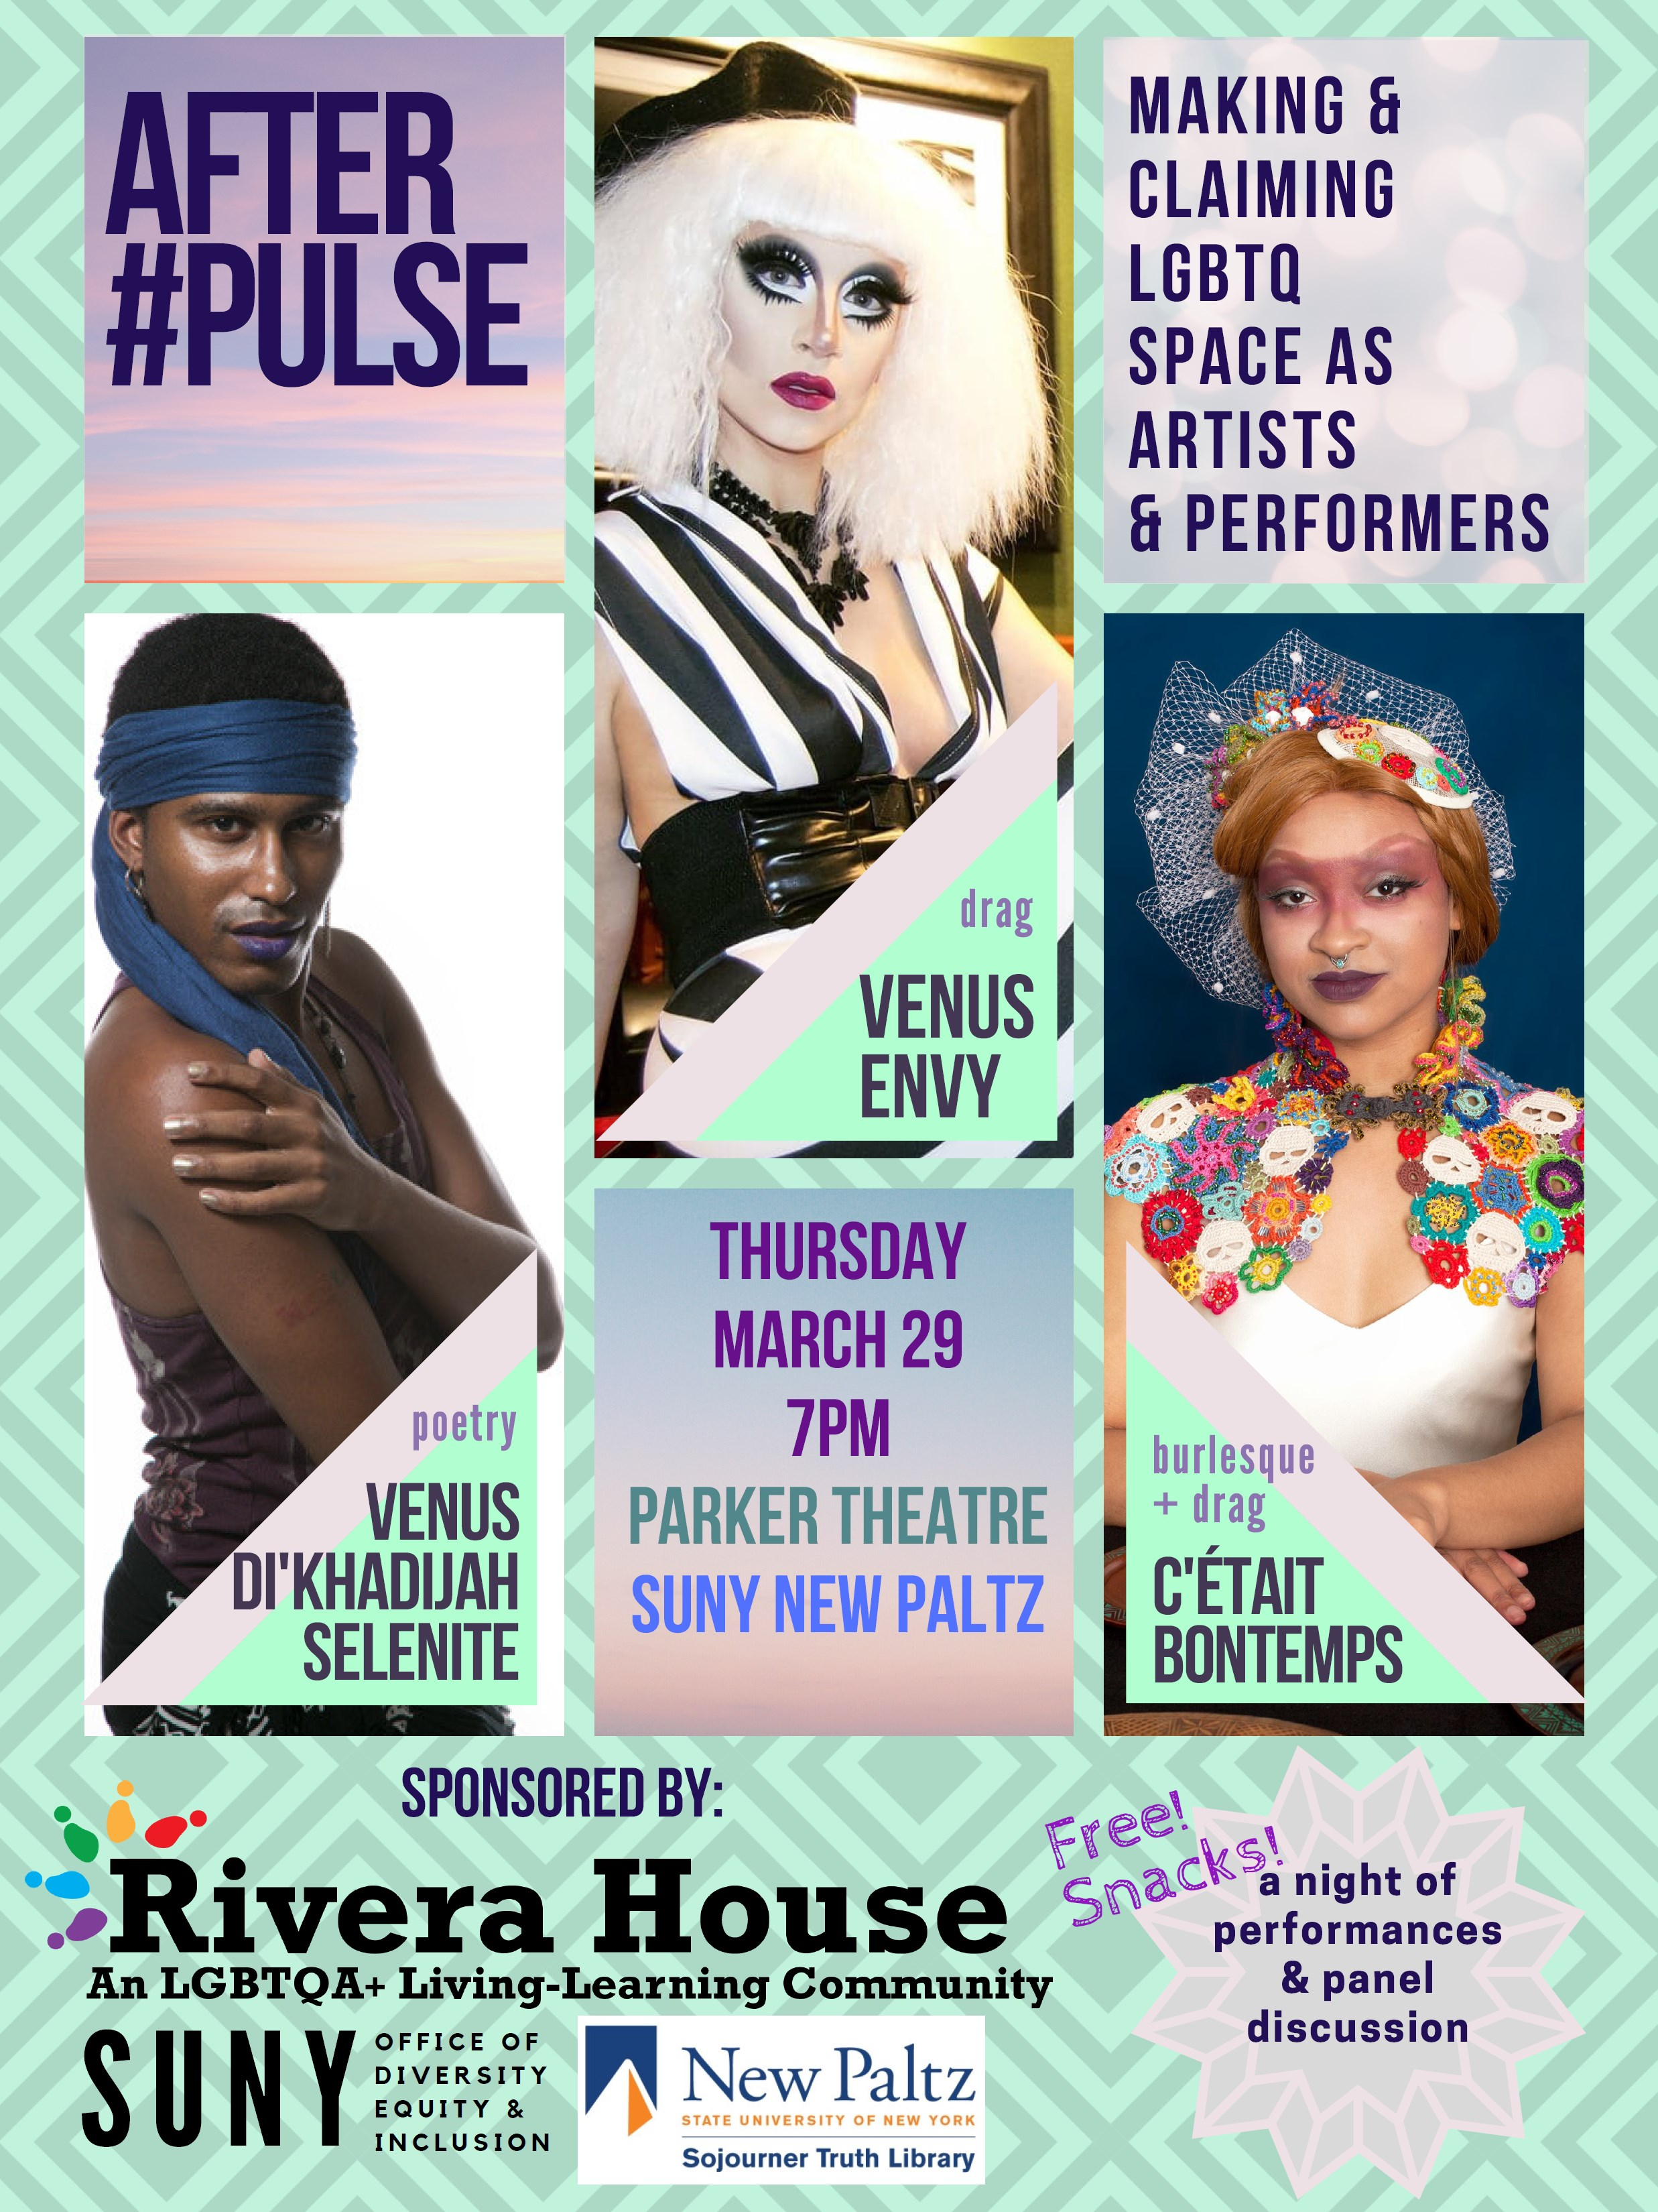 #AfterPulse LGBTQ event